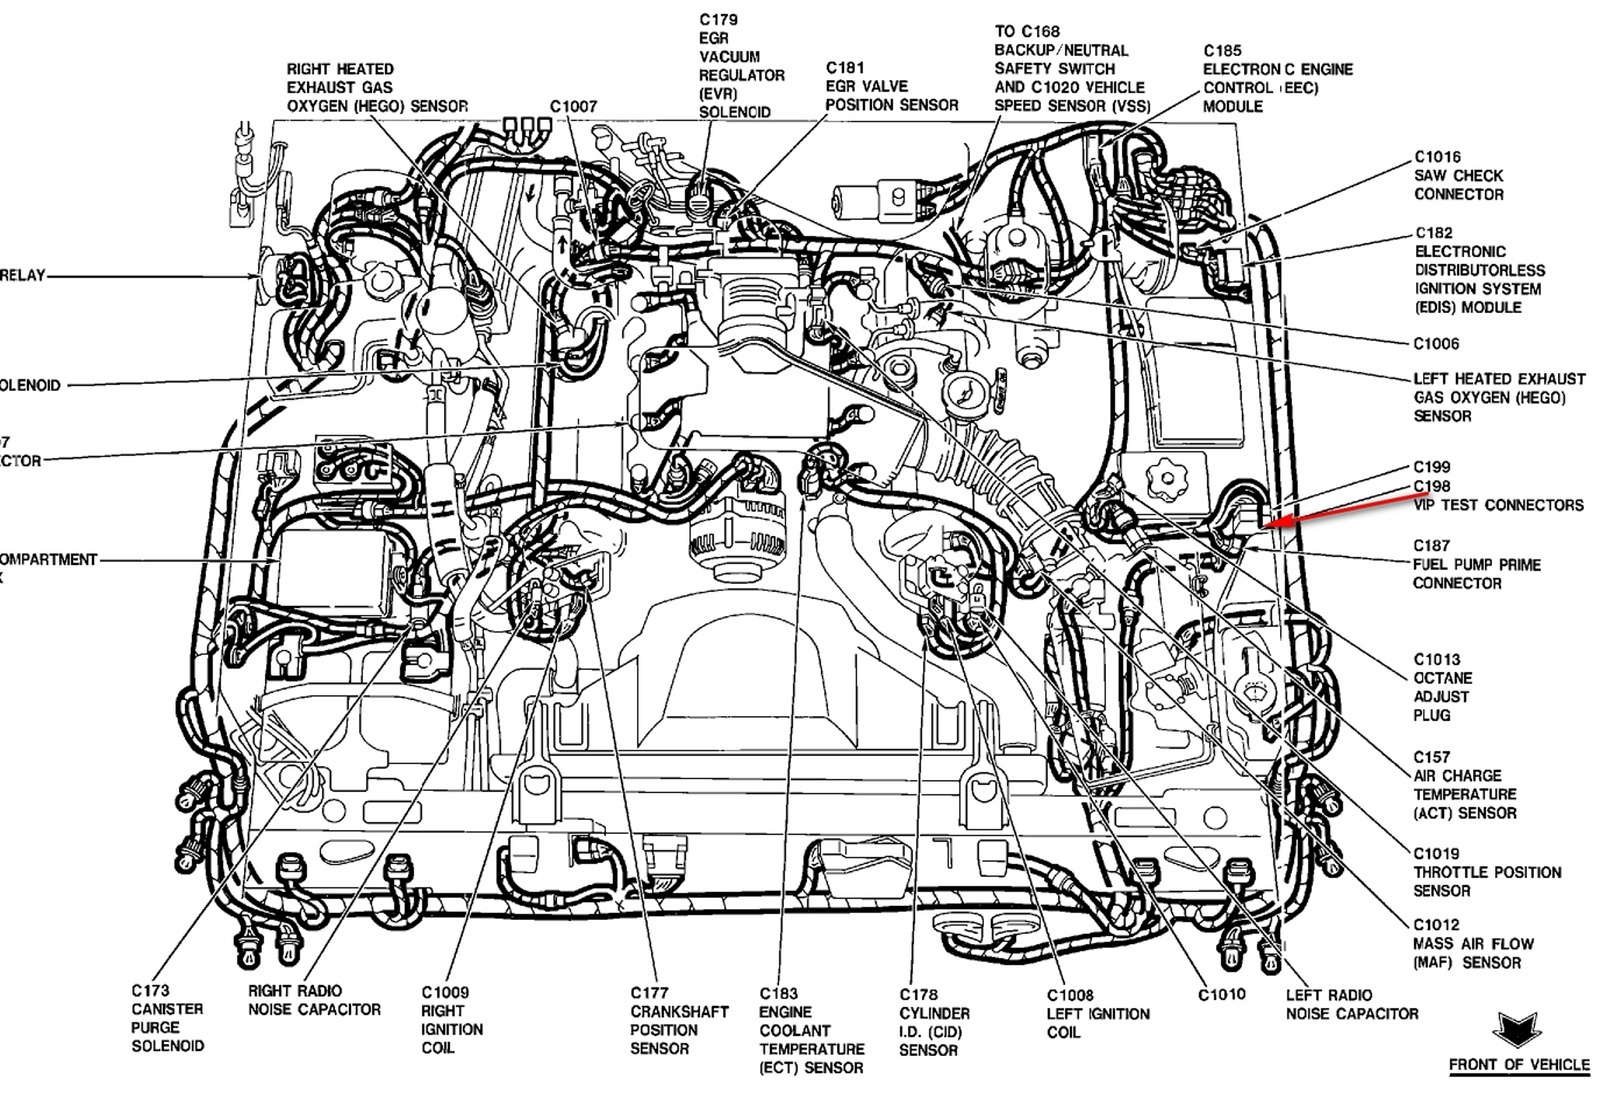 1991 Buick Century Engine Diagram Great Design Of Wiring 1992 Mercury Grand Marquis Questions Why Did The Temp Gauge Crankshaft Sensor 91